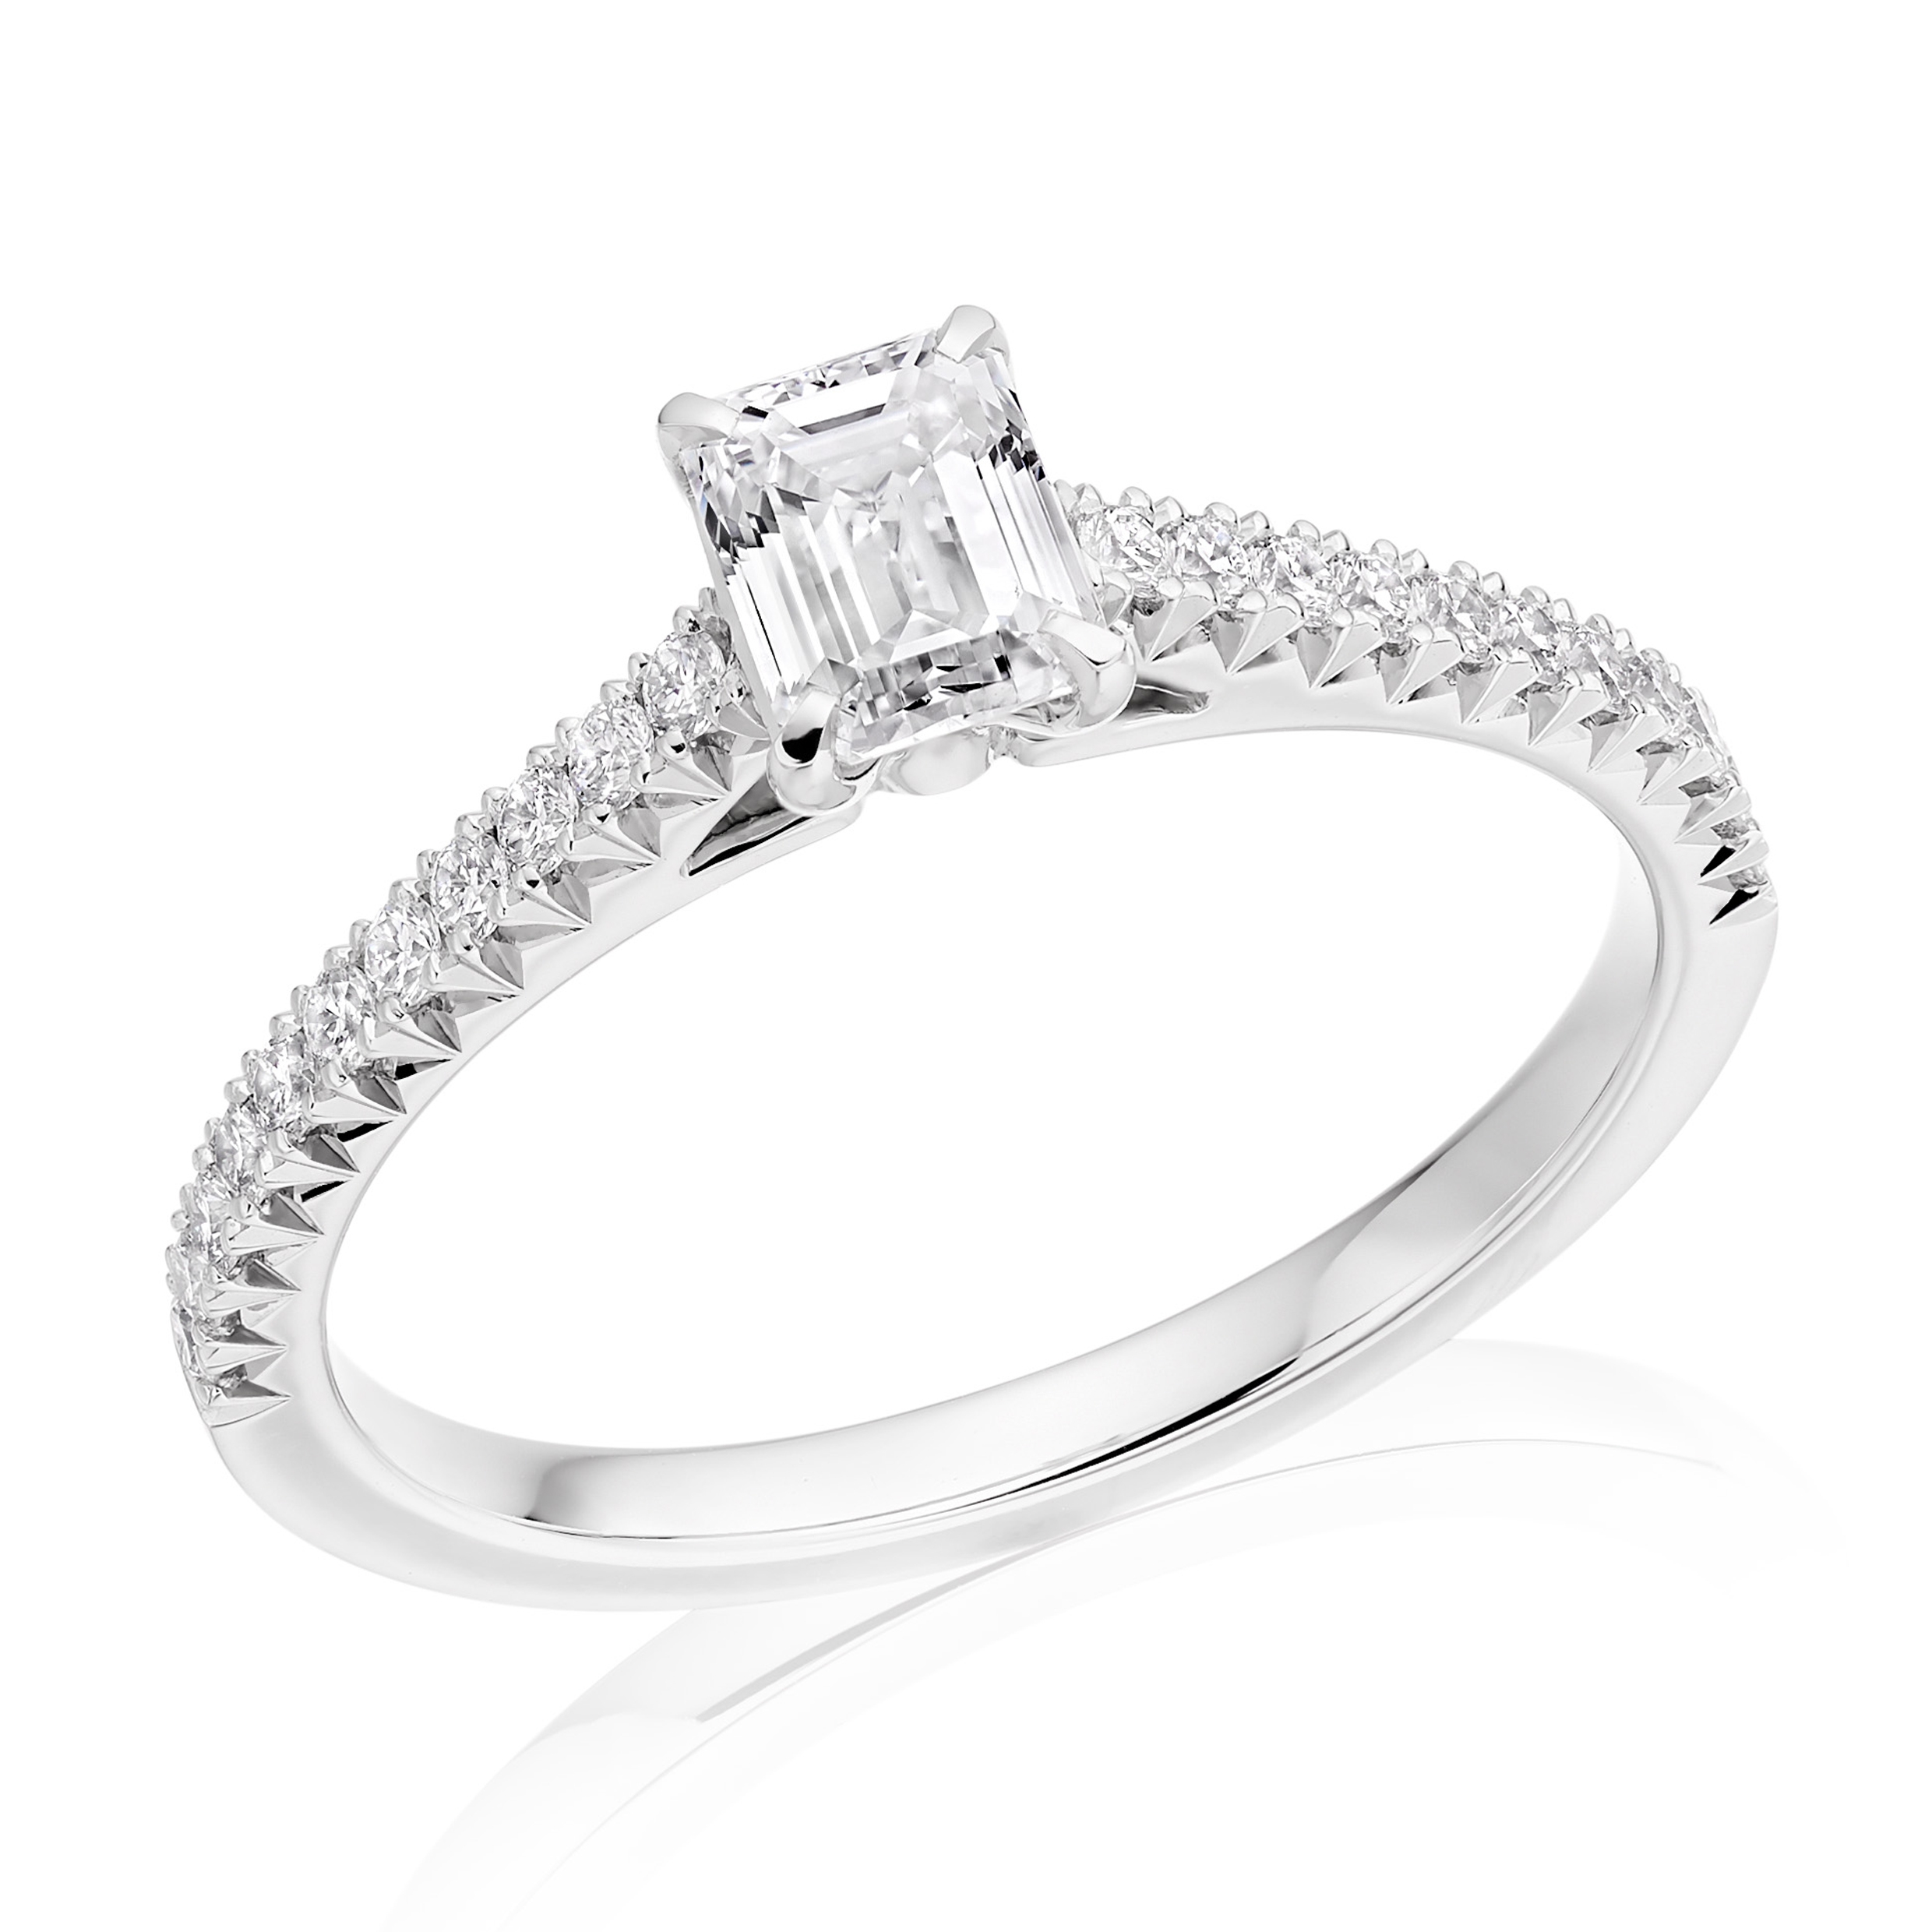 Platinum Lux 0 50ct Emerald Cut Diamond Solitaire Ring With French Cut Setting 01 02 223